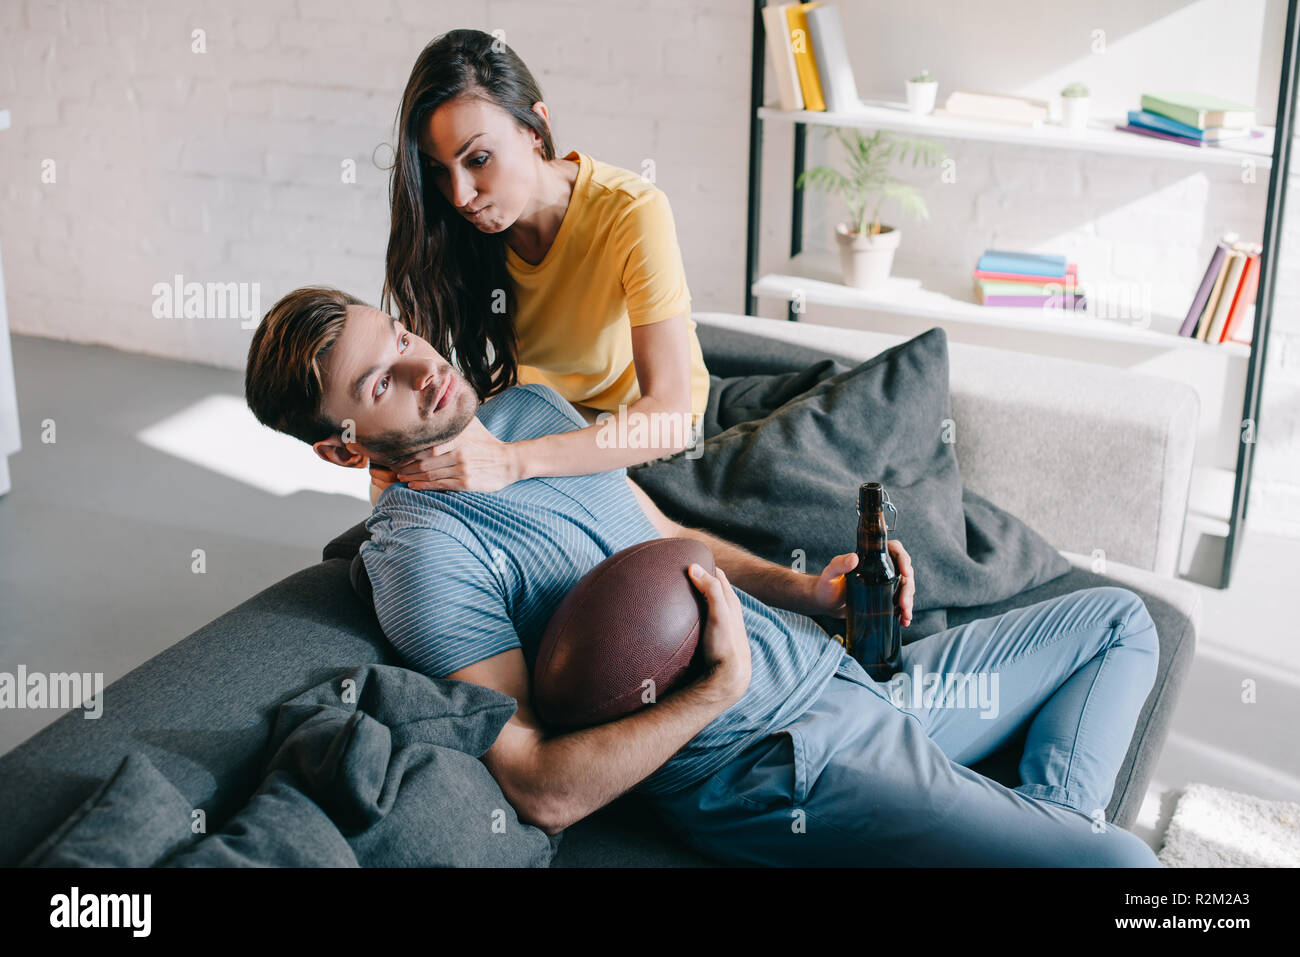 angry woman choking her husband while he watching american football on tv at home - Stock Image